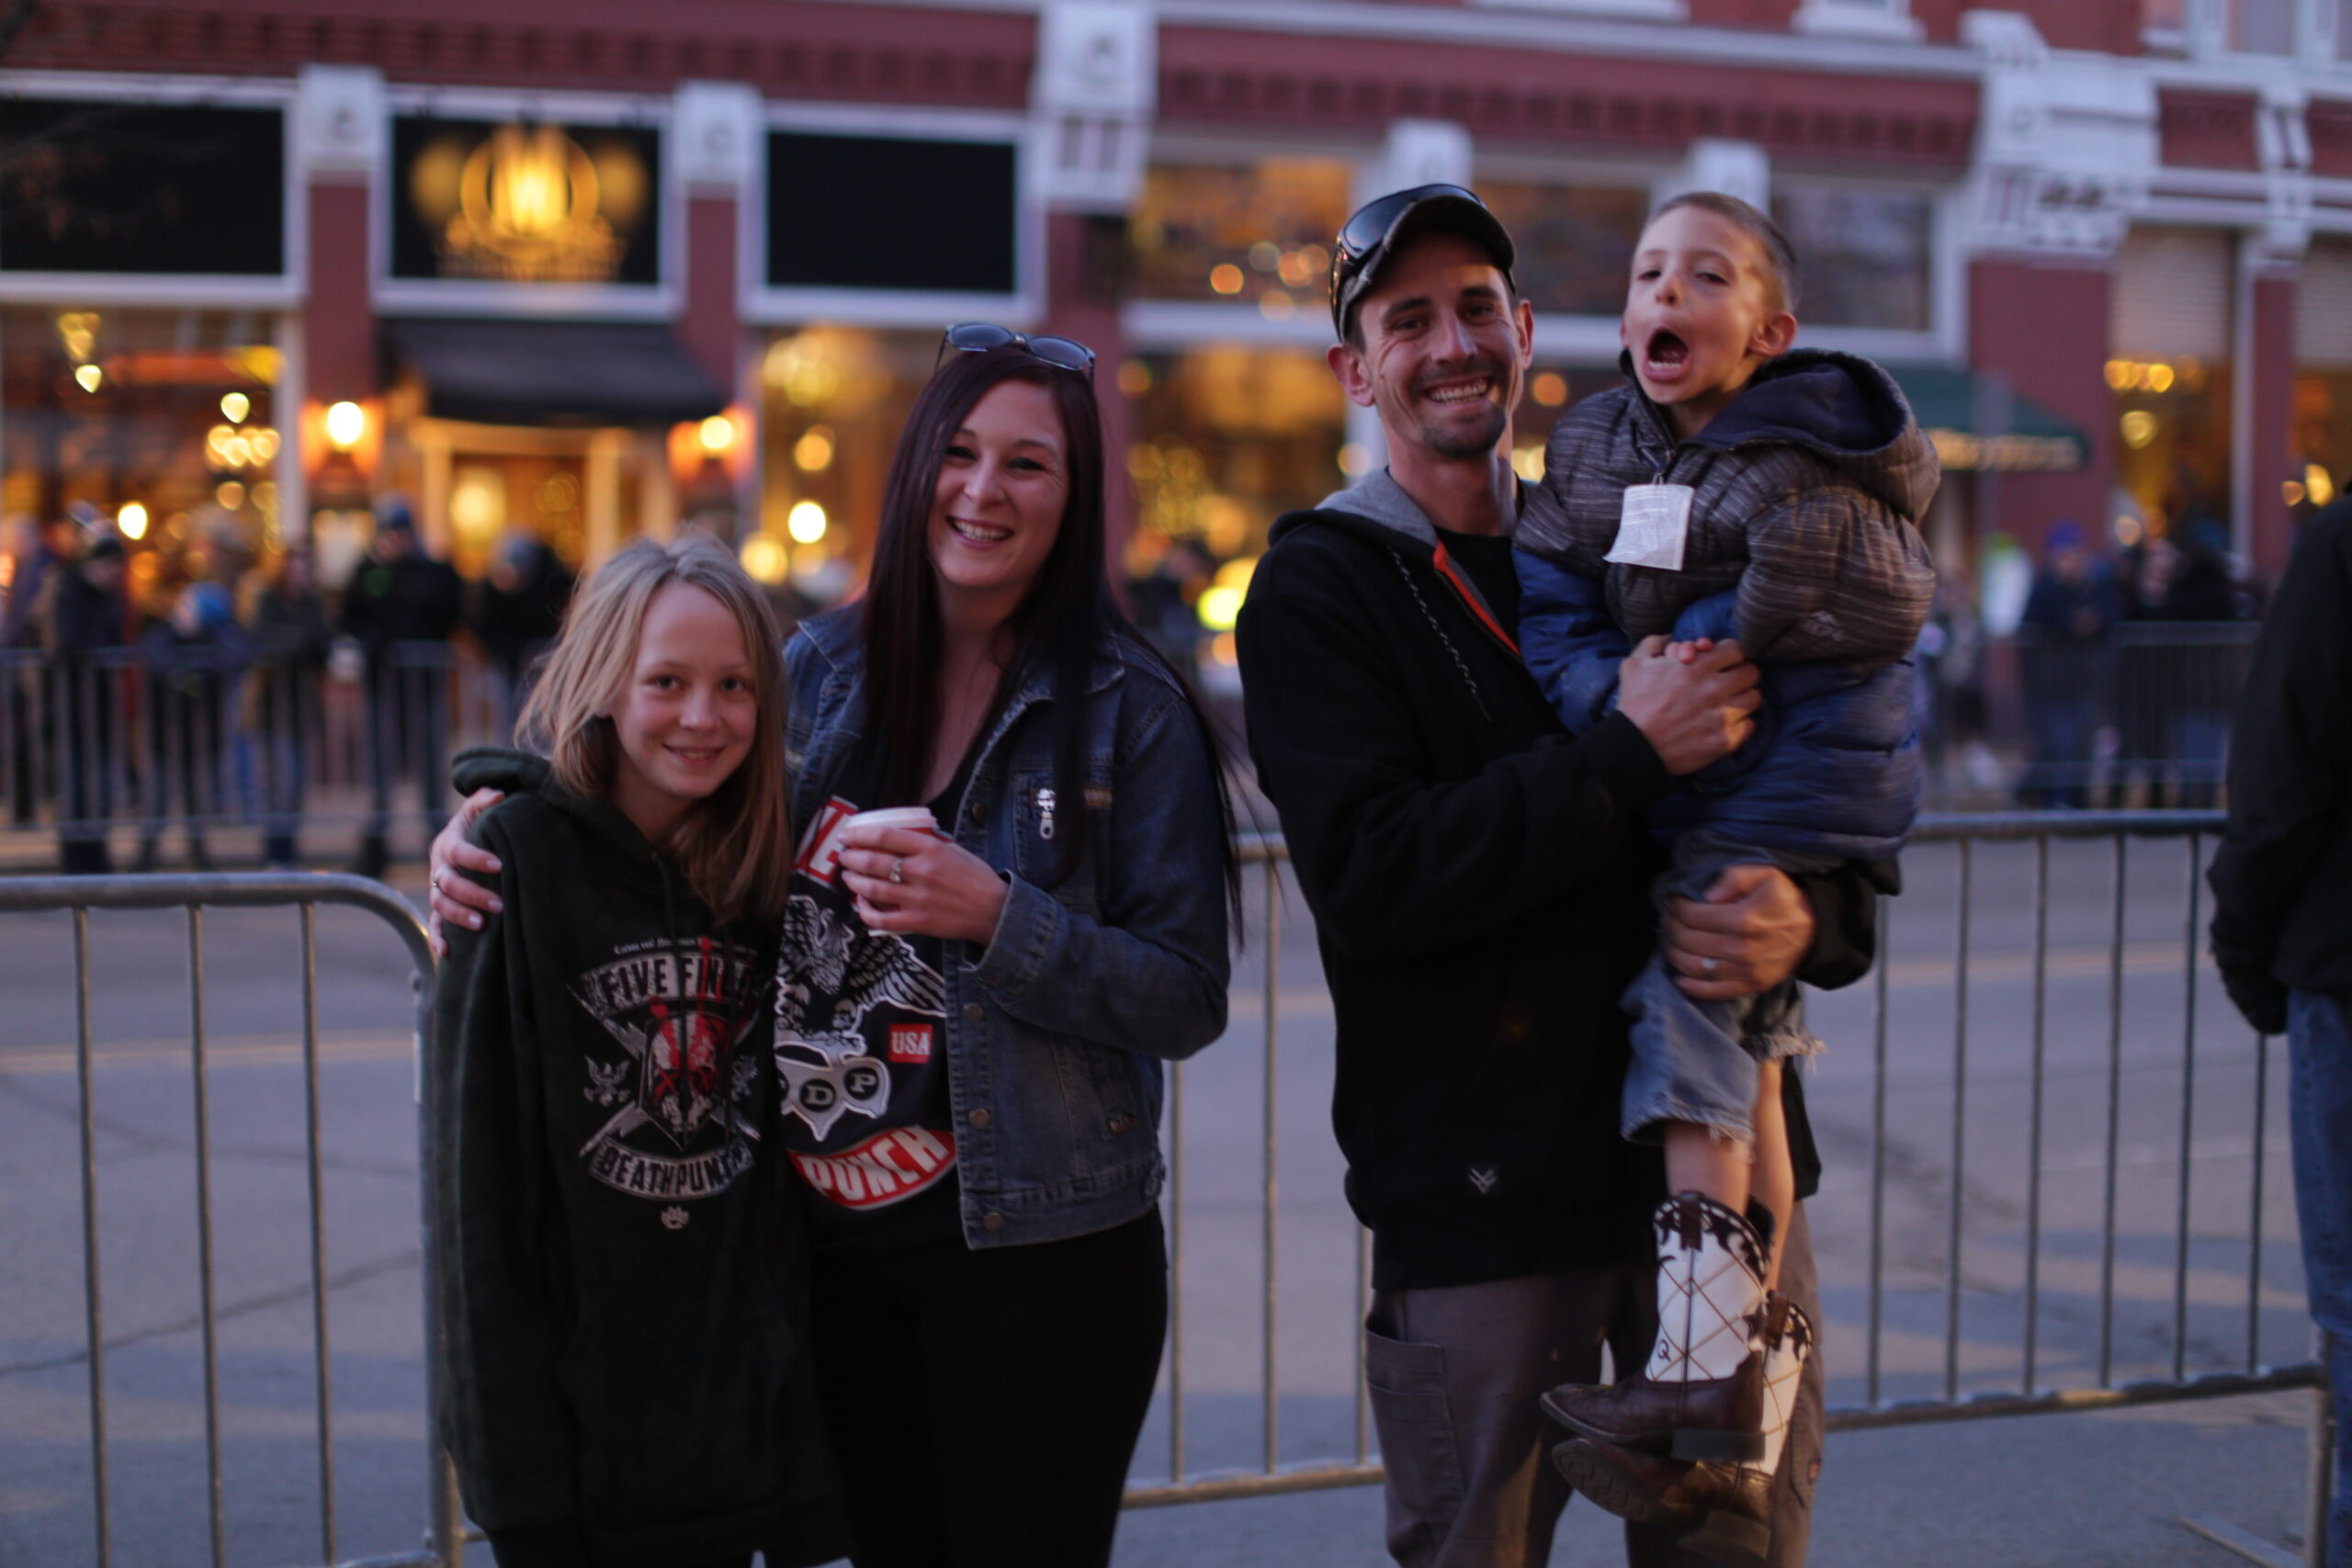 Steph Sherman and her family at Durango's Snowdown winter carnival, Jan. 29 - Feb. 2, 2020, pre-pandemic. Her youngest child makes silly faces as they wait for the parade to start.